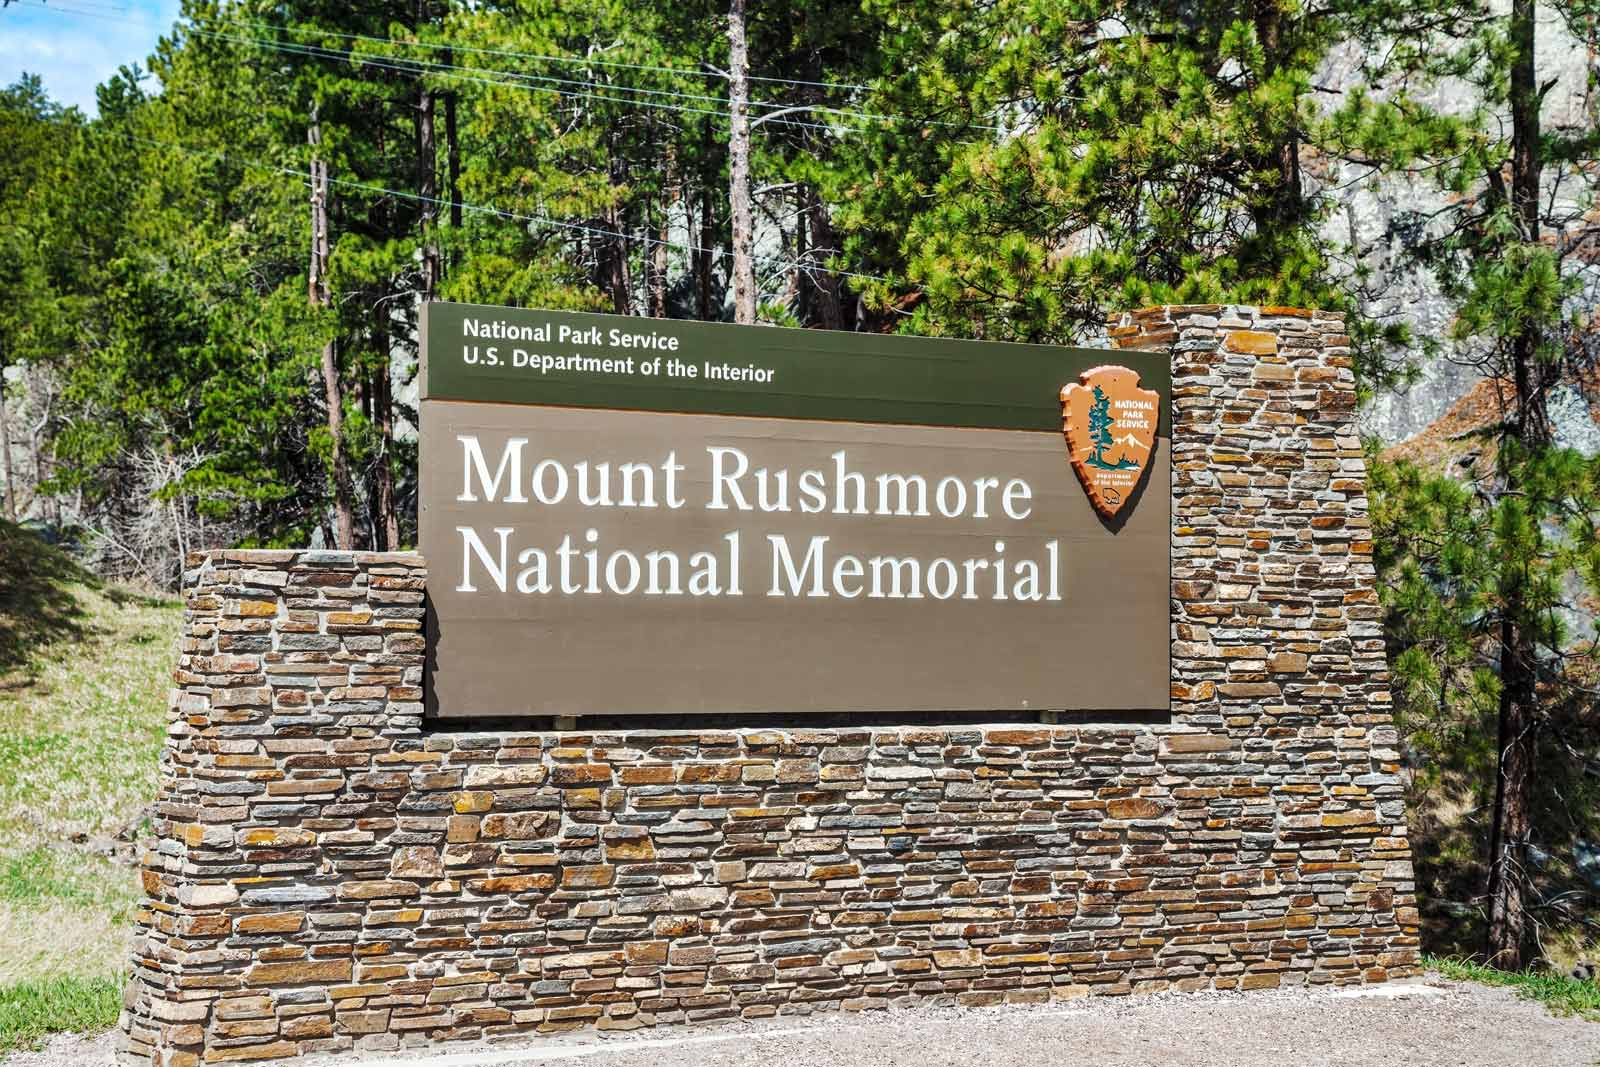 Guided tours at Mount Rushmore